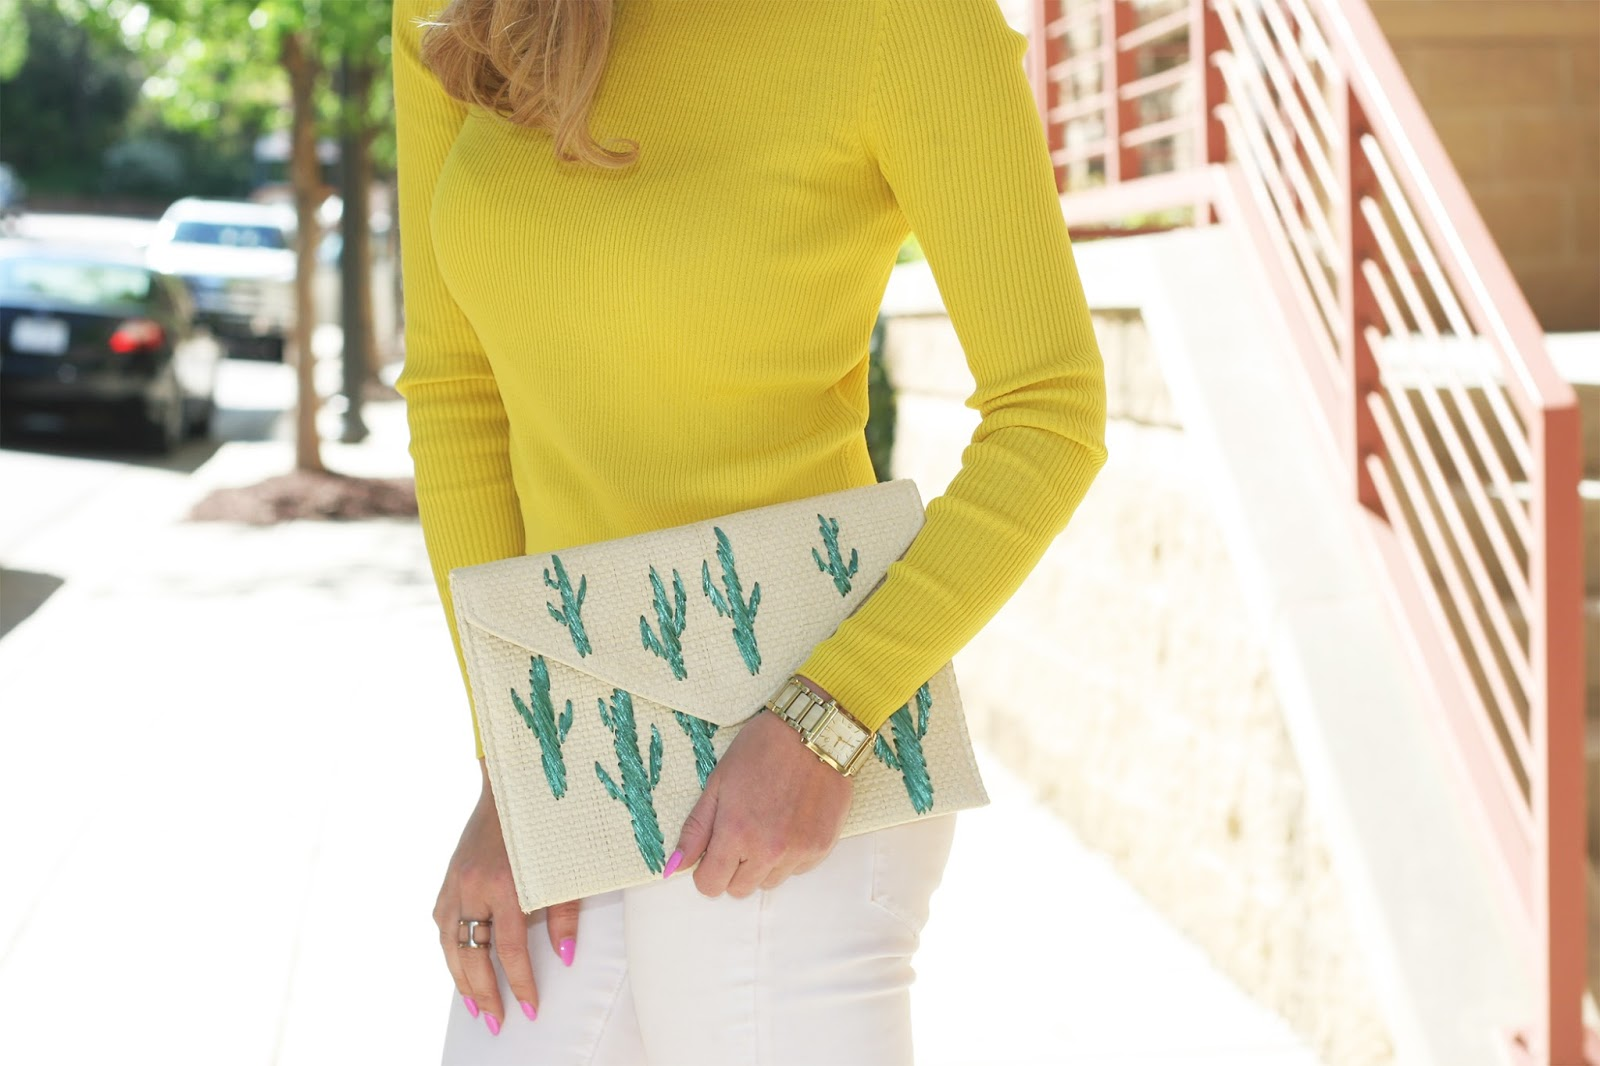 Statement-clutch-for-summer-straw-envelop-bag-embroidered-with-cactus-print